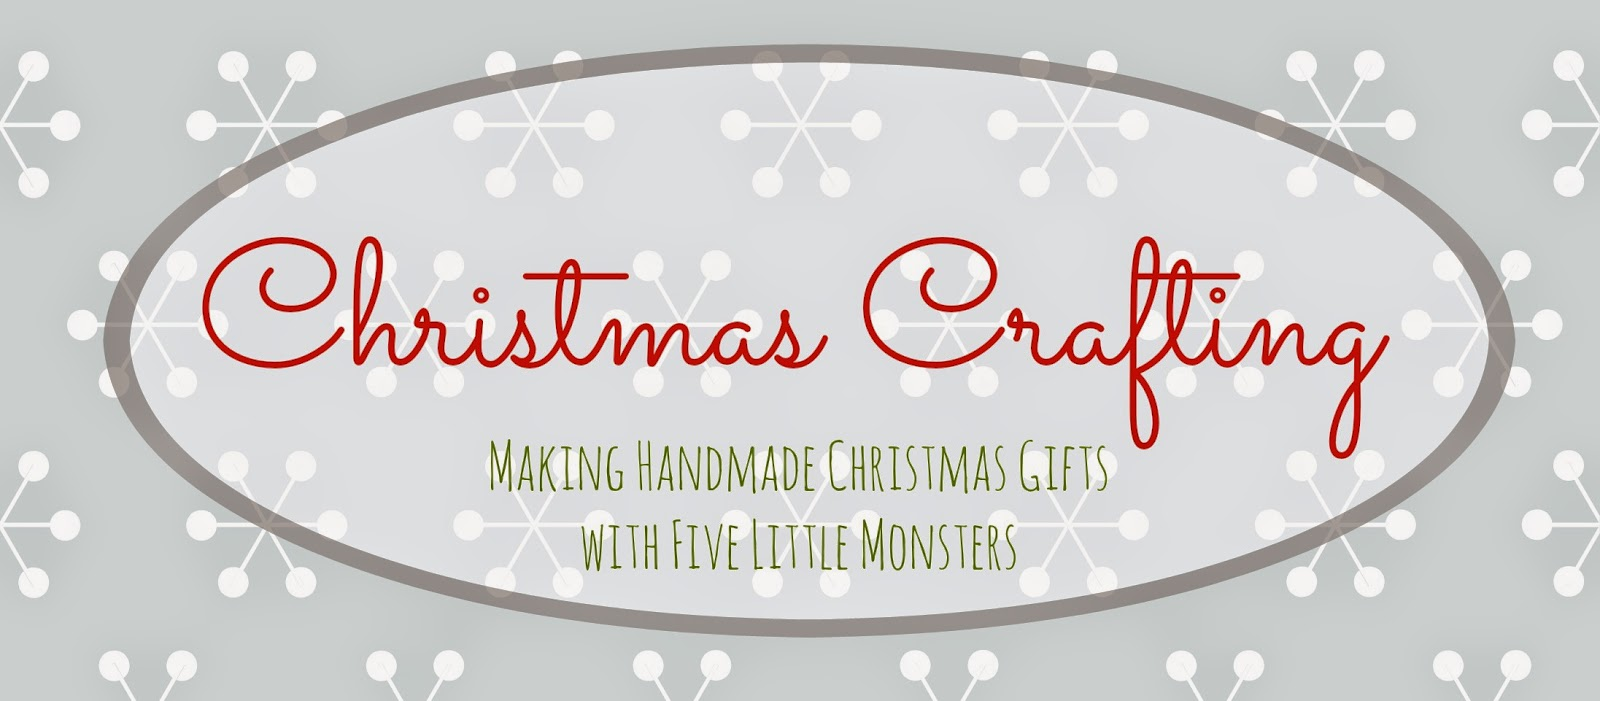 5 Little Monsters: Christmas Crafting- 5+ Handmade Gift Ideas